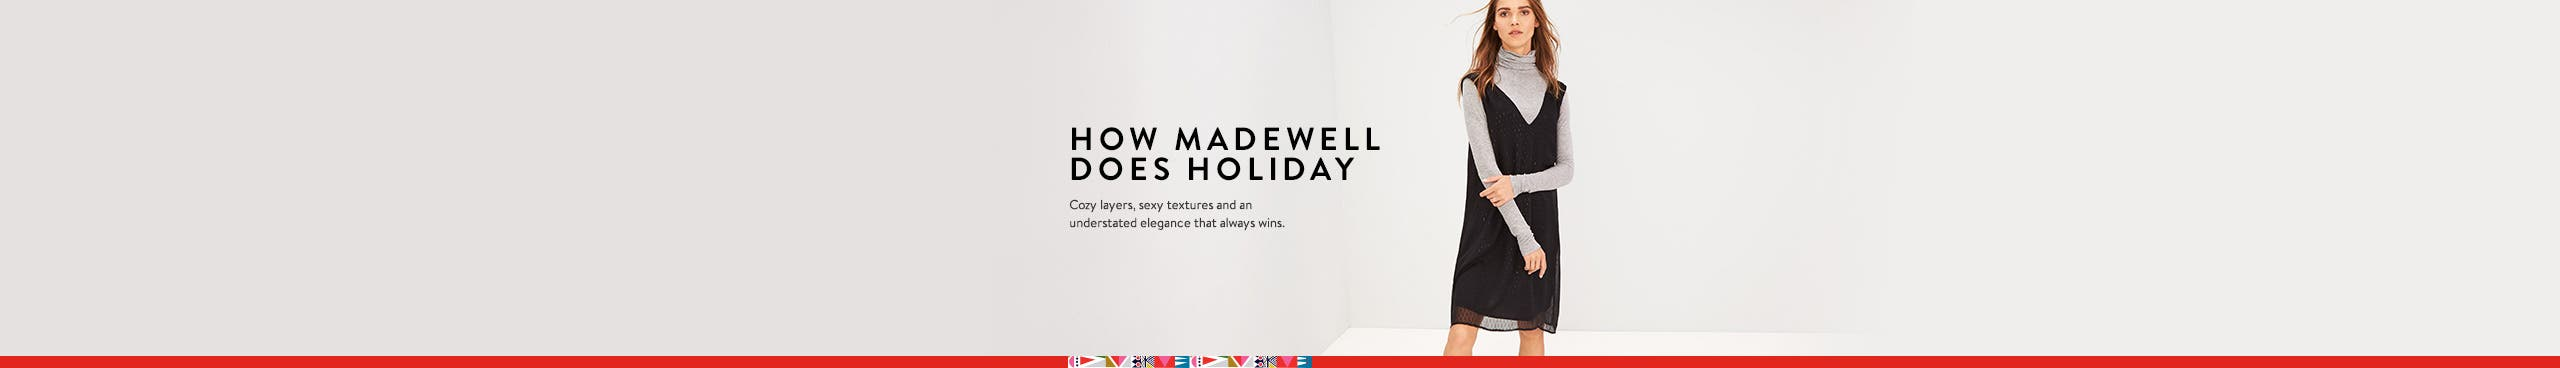 How Madewell does holiday.